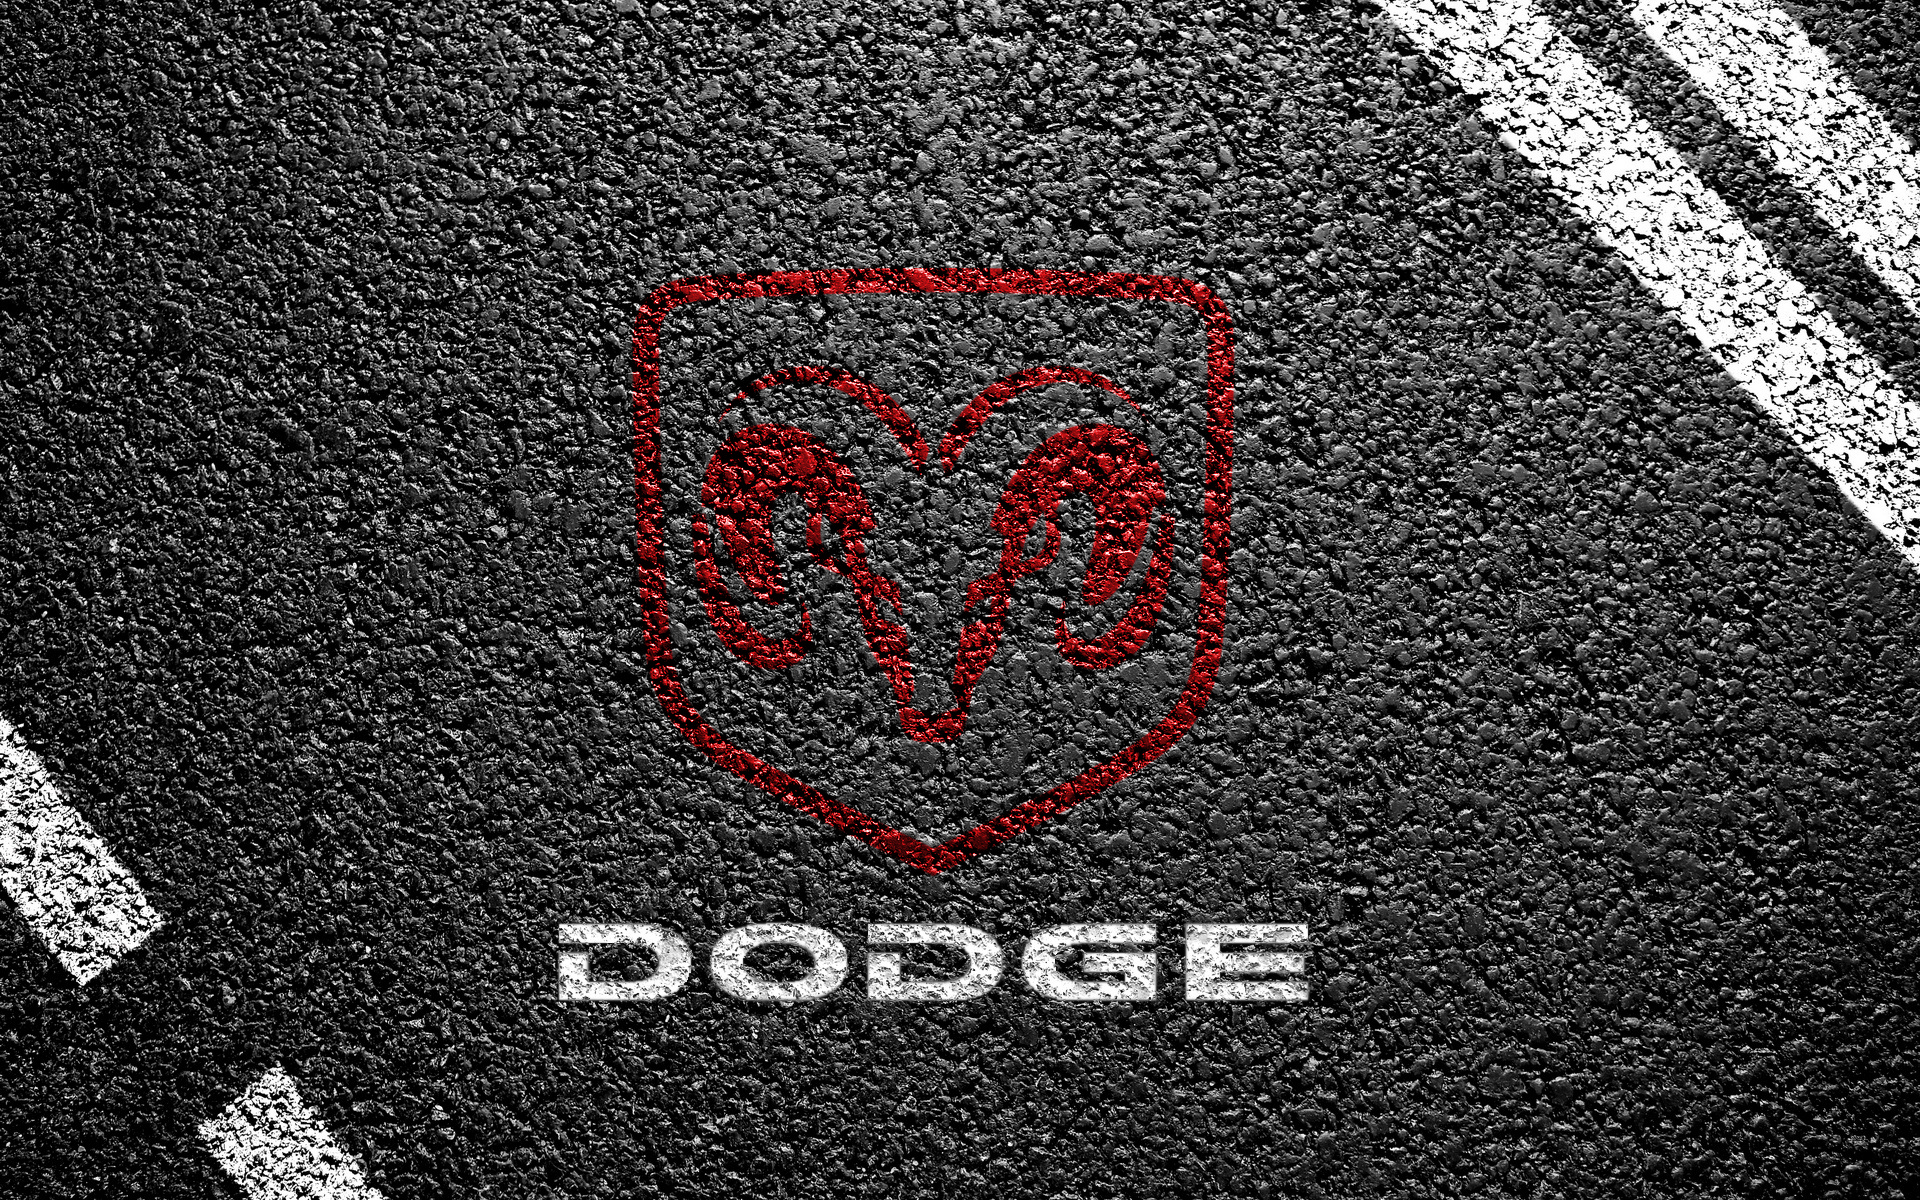 4 Hd Dodge Logo Wallpapers